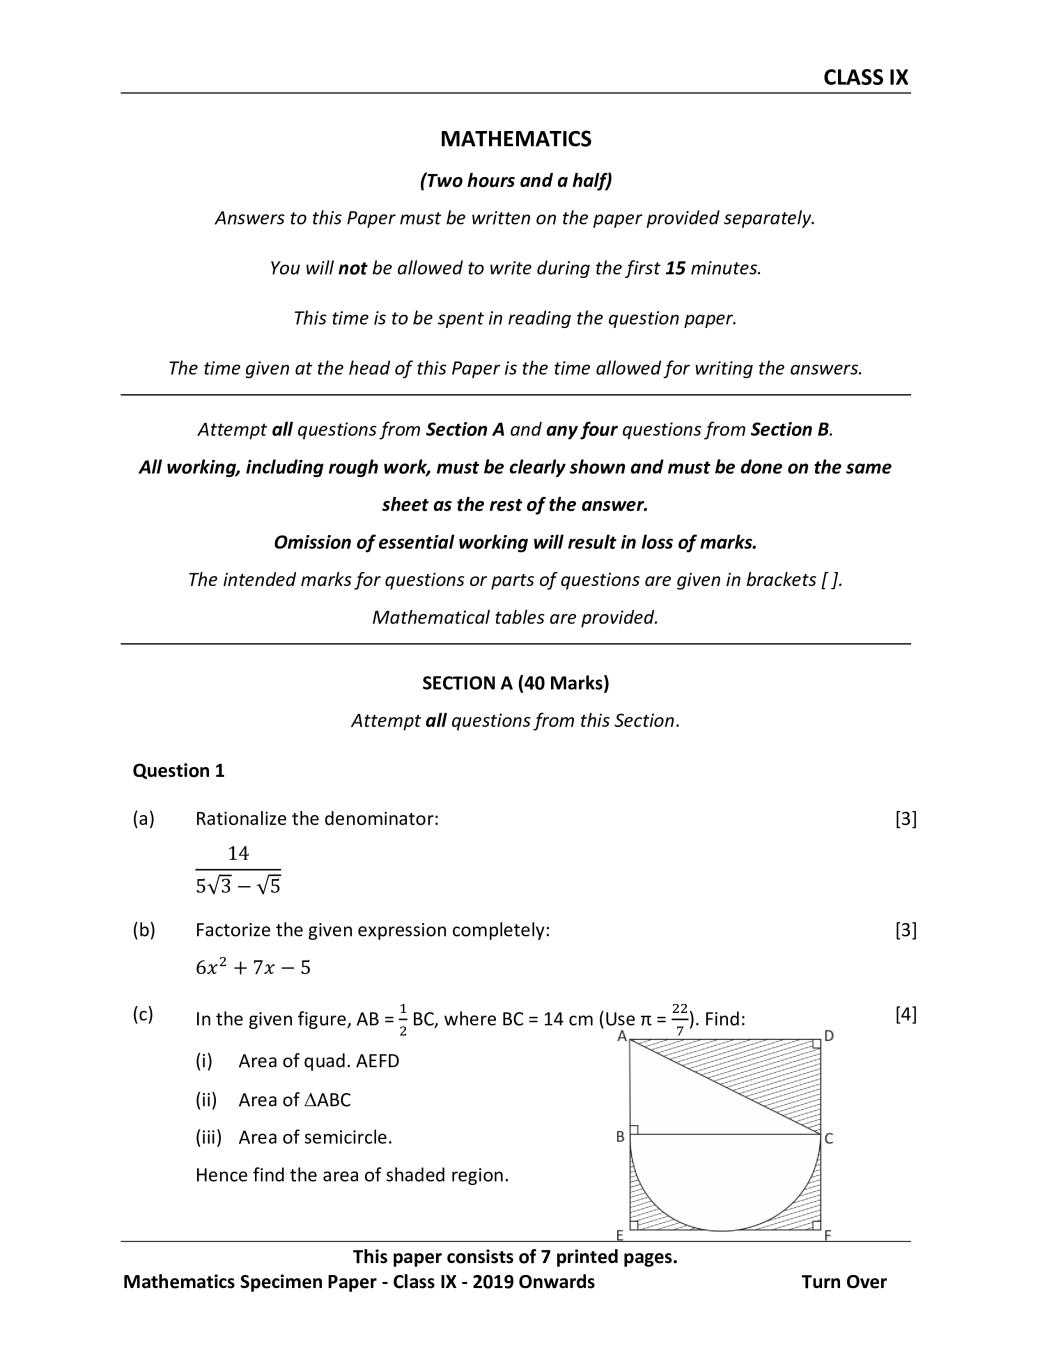 ICSE Class 9 Specimen Paper 2019 for Mathematics  - Page 1